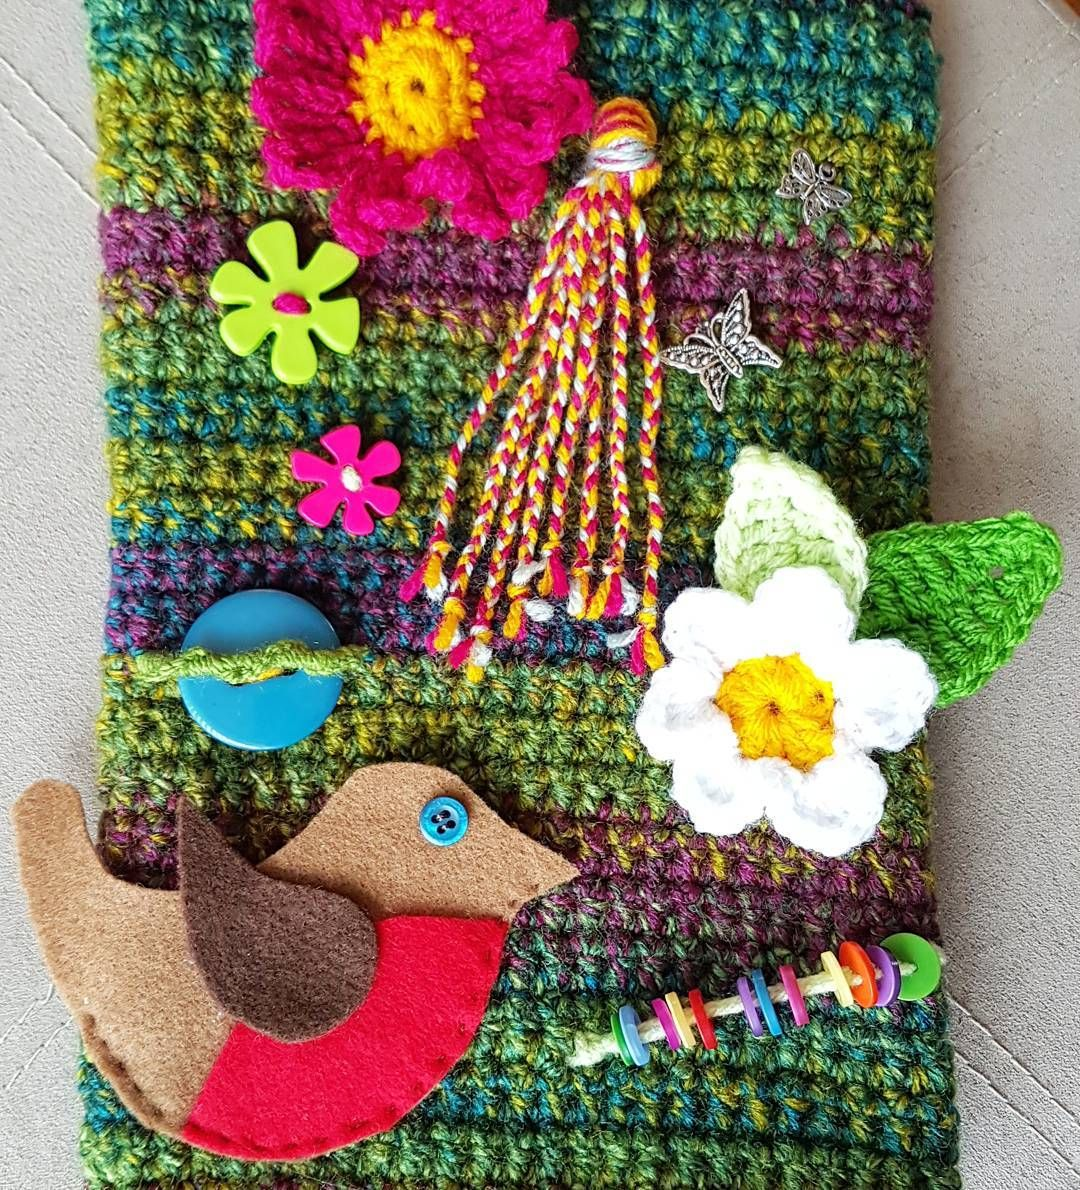 Pin On Crafts For Therapy Twiddle Muffs Disabled